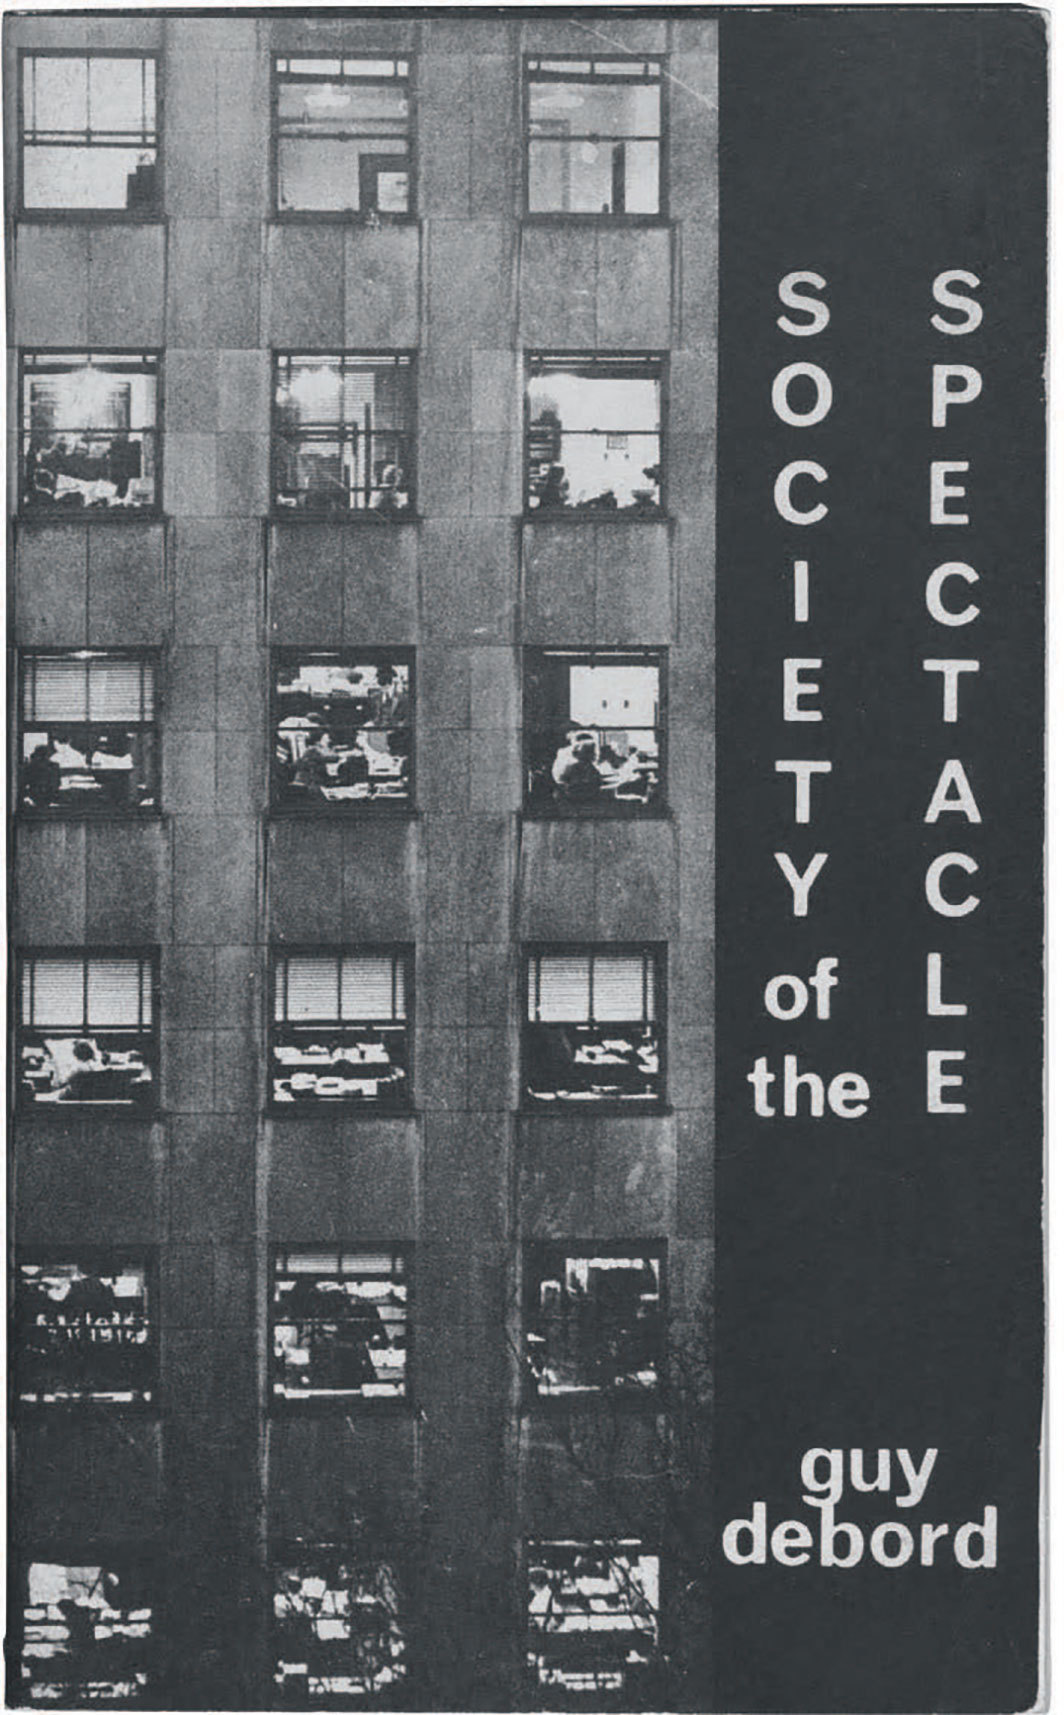 Cover of the English edition of Guy Debord's 1967 La société du spectacle (Society of the Spectacle) (Black & Red / Radical America, 1970).